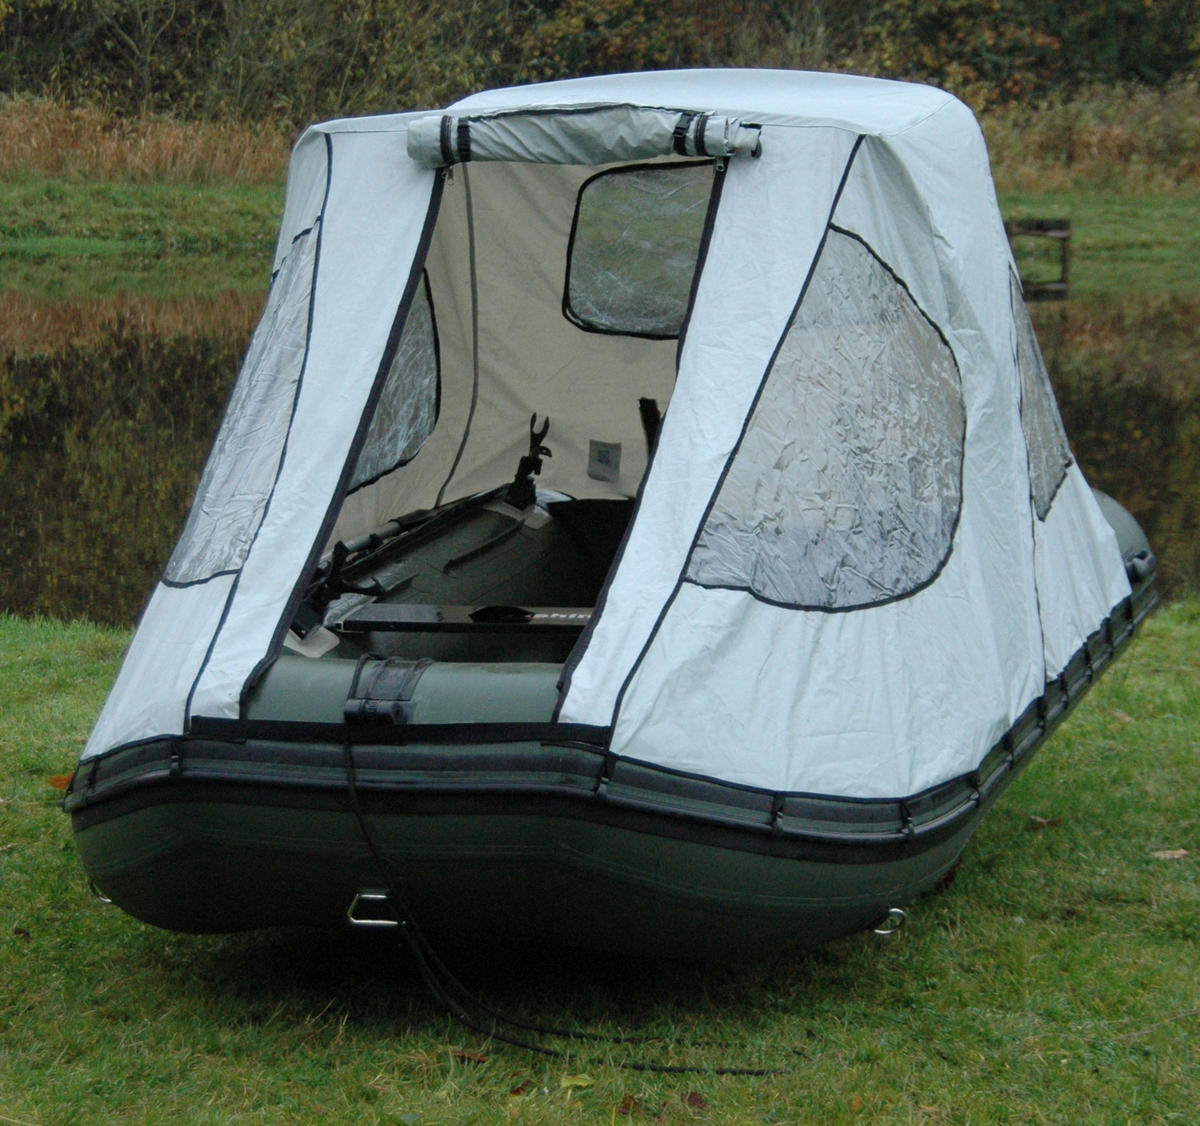 Thumbnail 3 & BISON MARINE BIMINI COCKPIT TENT CANOPY FOR INFLATABLE BOAT ...